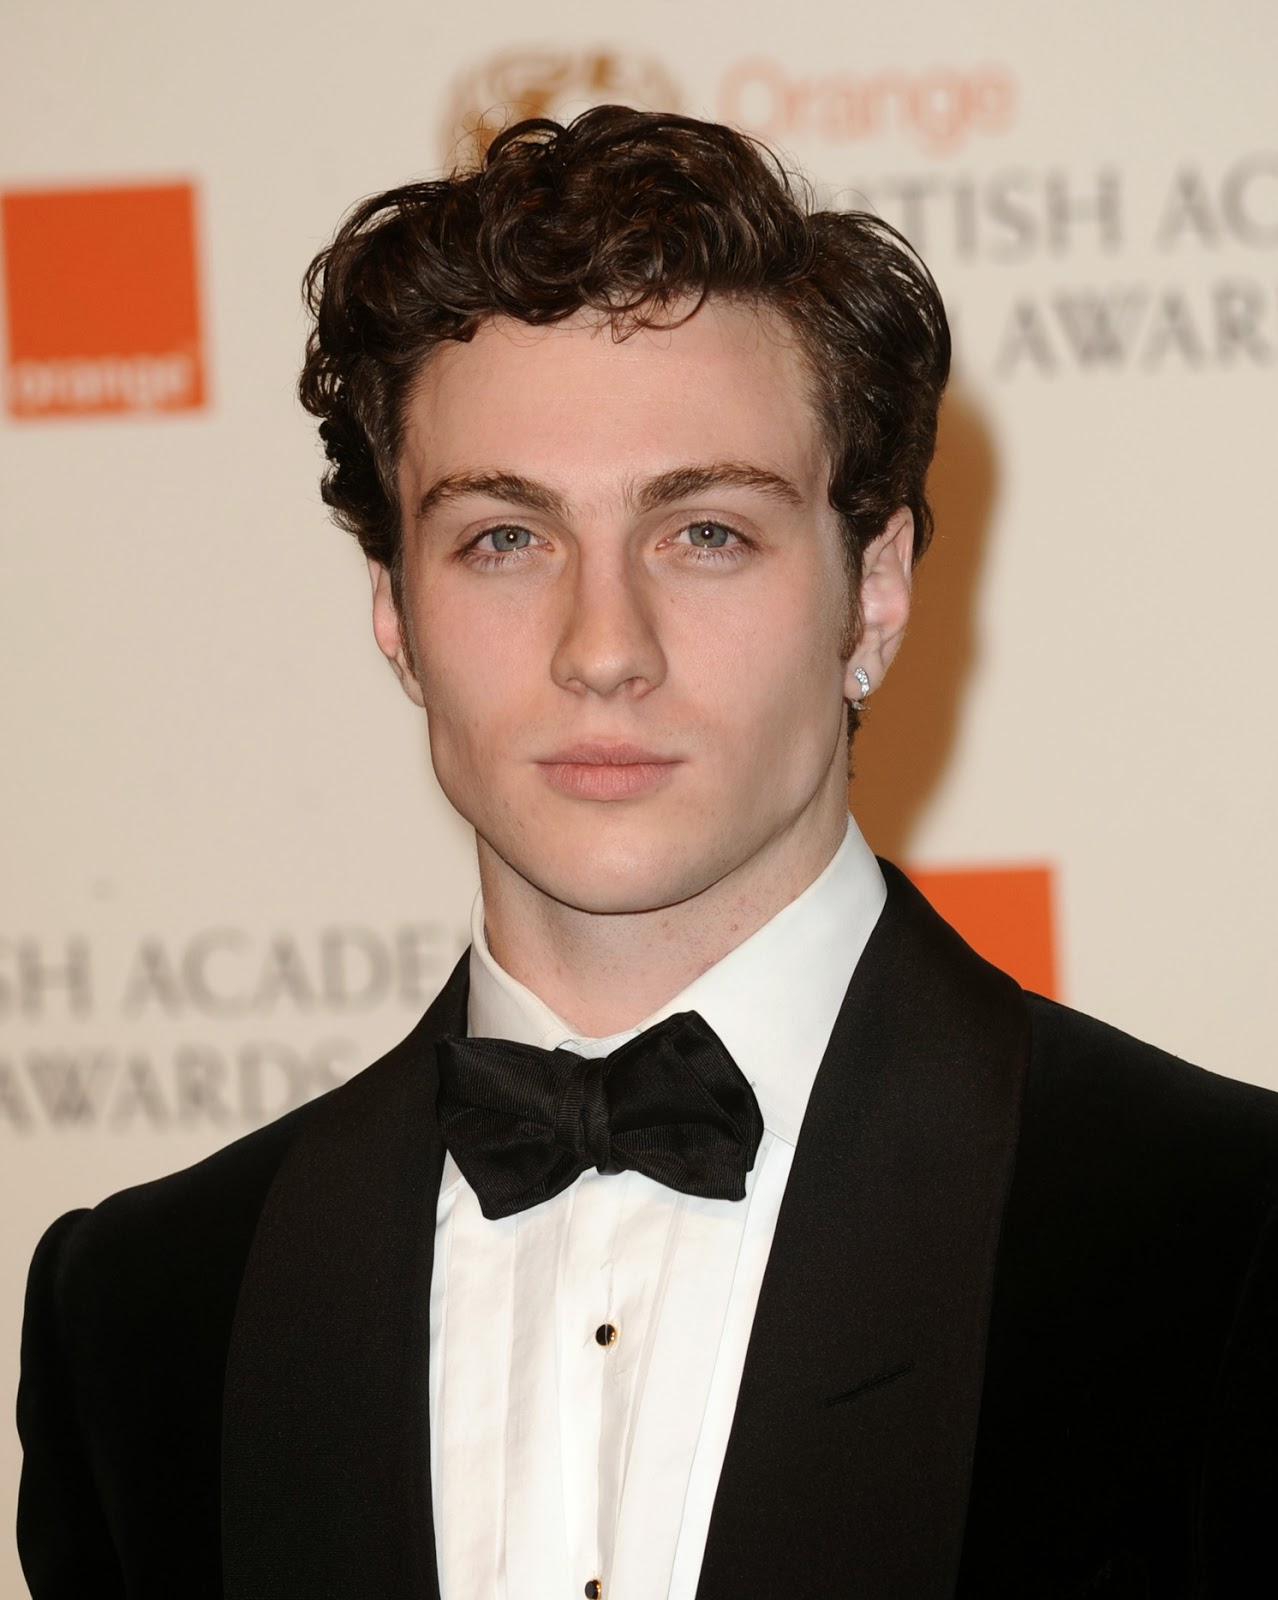 BADBOYS DELUXE: AARON TAYLOR-JOHNSON TO PLAY QUICKSILVER ...